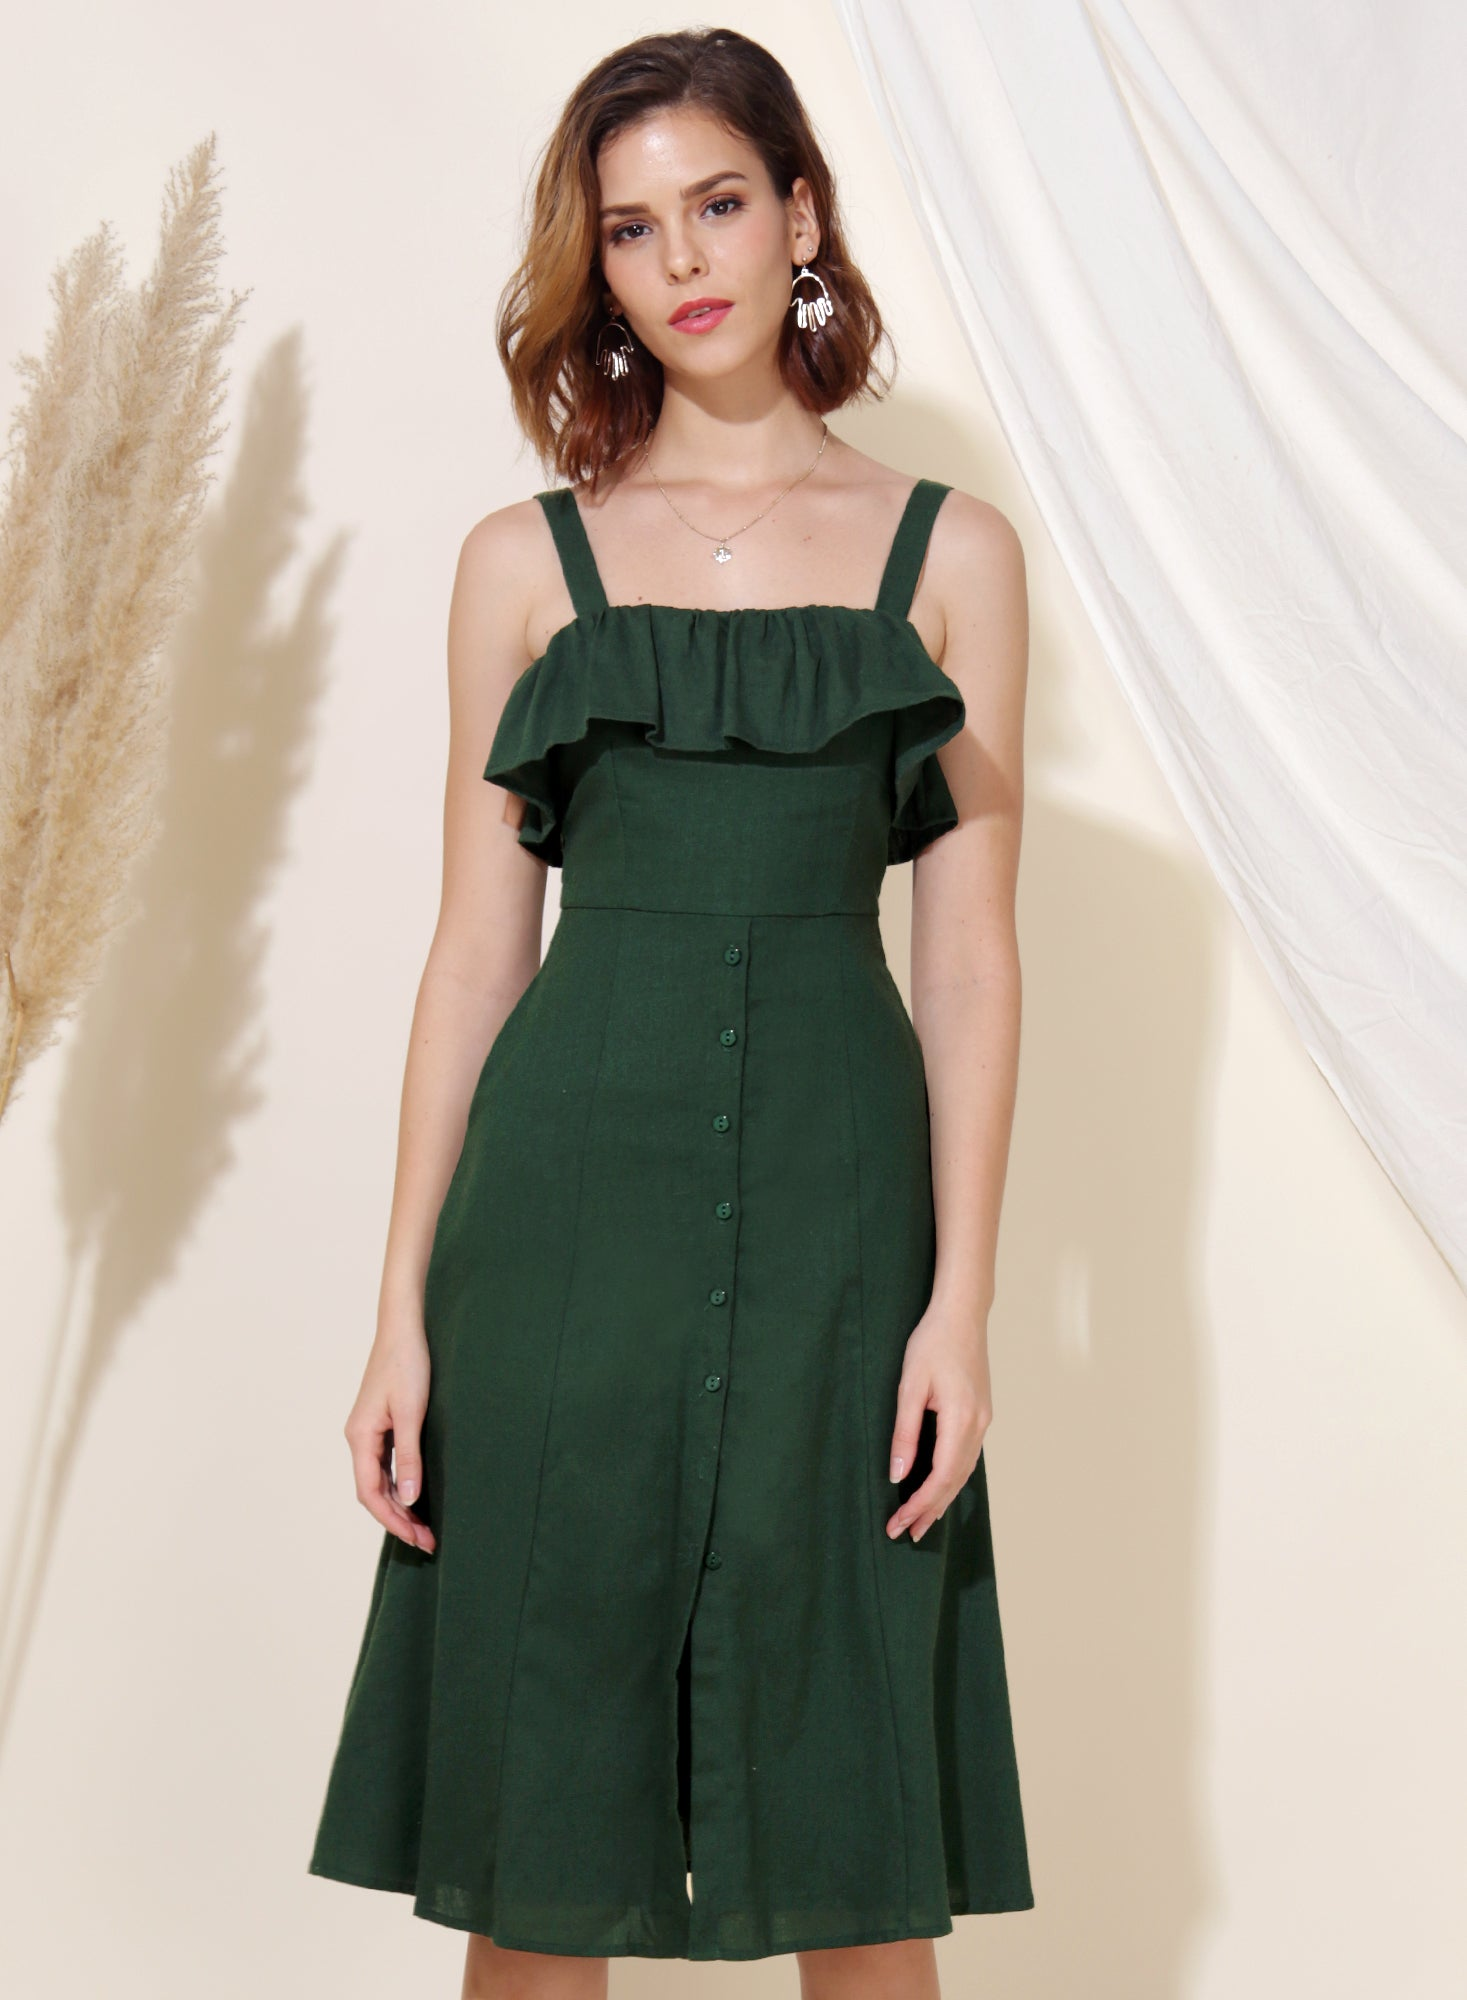 Eternal Ruffle Tier Midi Dress (Forest) at $ 43.50 only sold at And Well Dressed Online Fashion Store Singapore